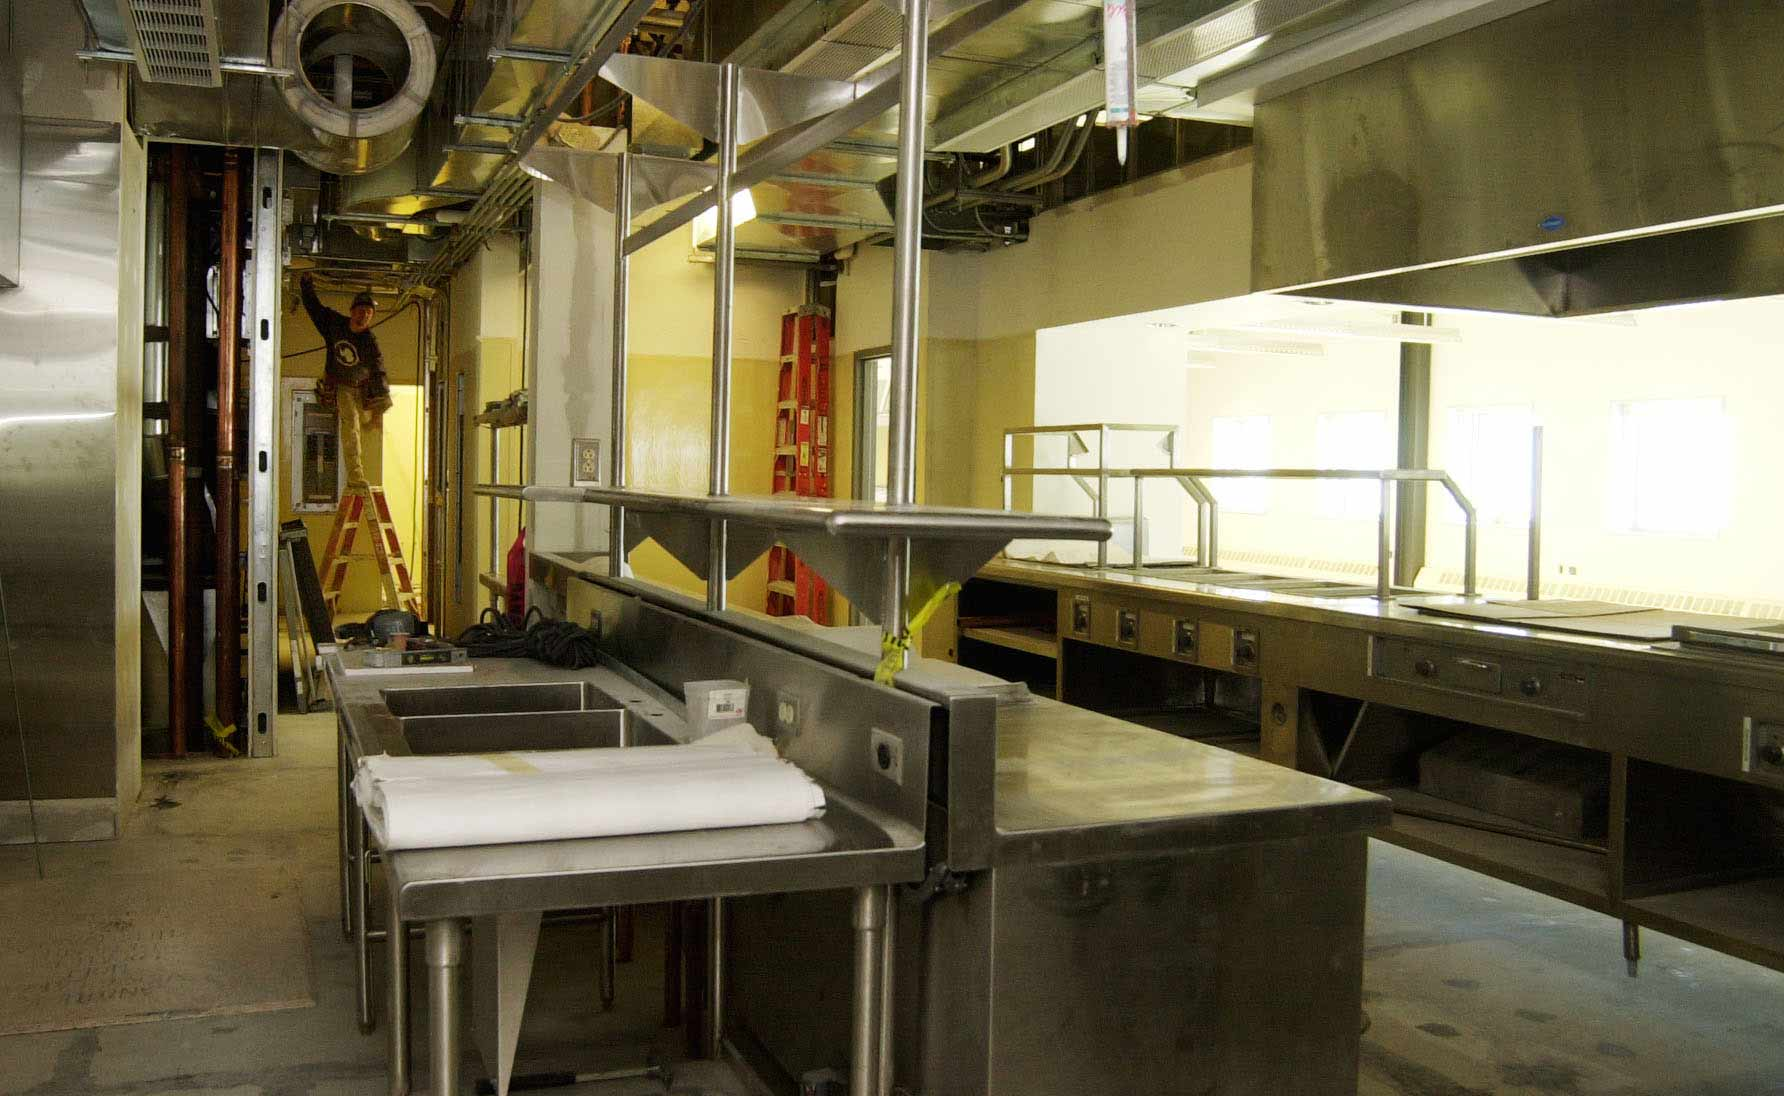 the galley food prep area